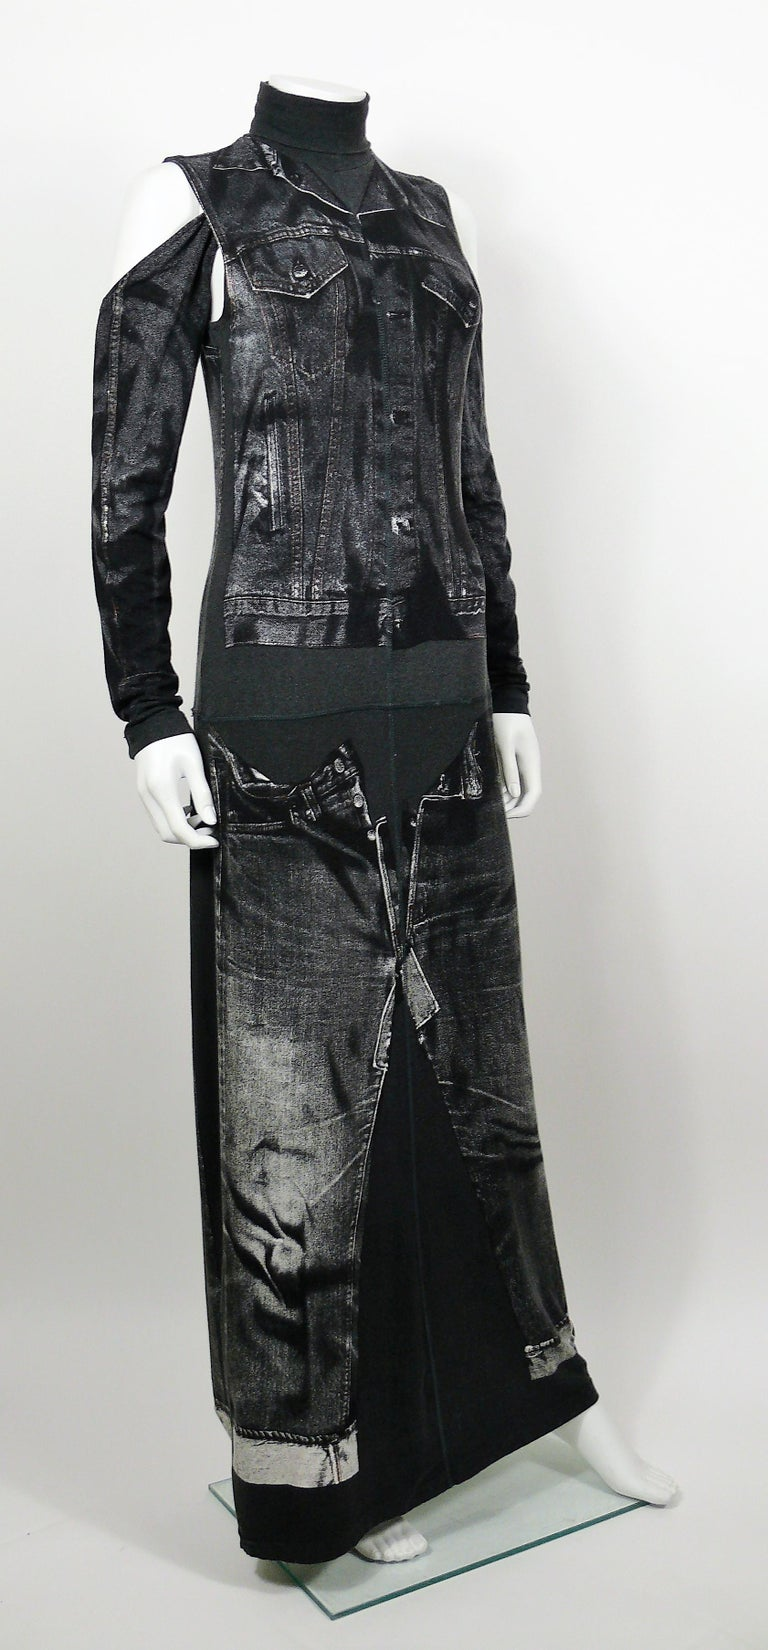 JEAN PAUL GAULTIER rare maxi jersey dress with detachable sleeves featuring an x-ray screen trompe l'œil jean jacket and jeans on the front and back.  This dress features : - Grey jersey background featuring distressed black/white x-ray screen